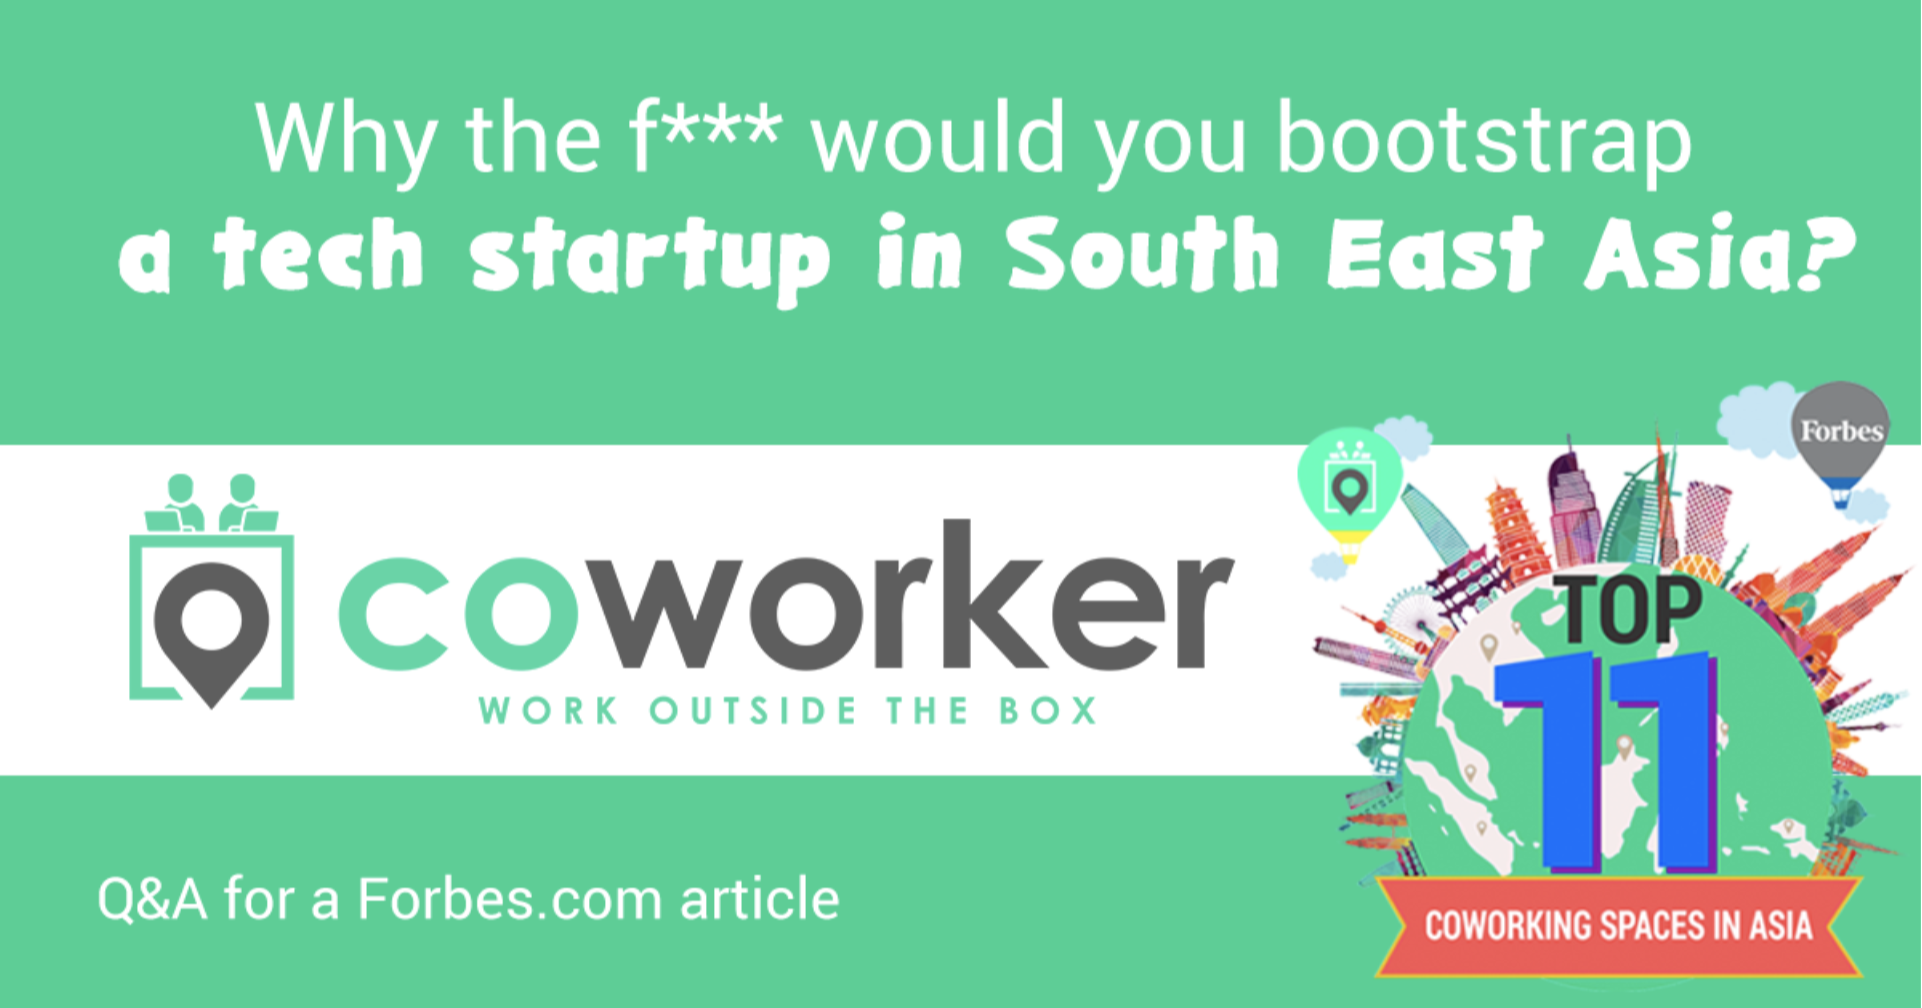 Why the f*** would you bootstrap a tech startup in South East Asia?